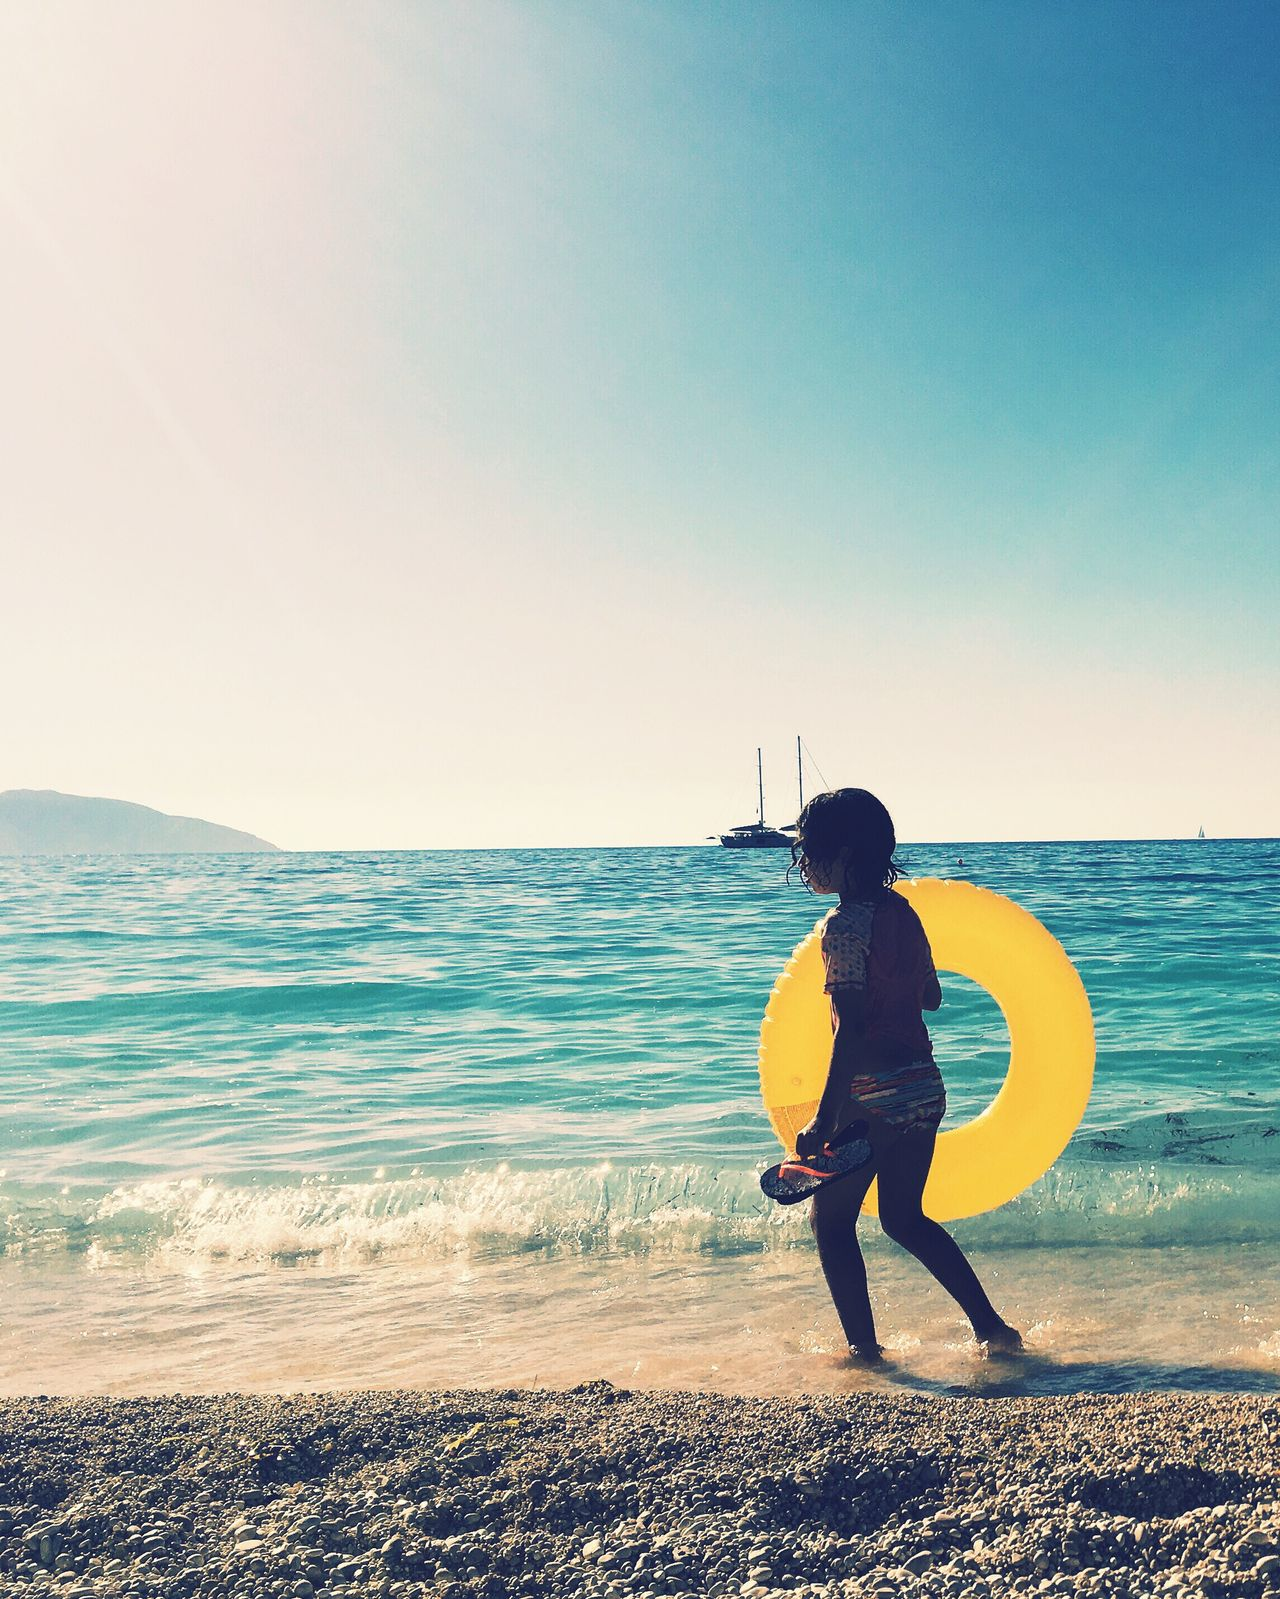 Summer in kefalonia Myrtosbeach Summer Greece Withmylove Onthebeach Water Sun Blue Beachphotography August Sea And Sky Photography Withmyfriends Yellow Circle